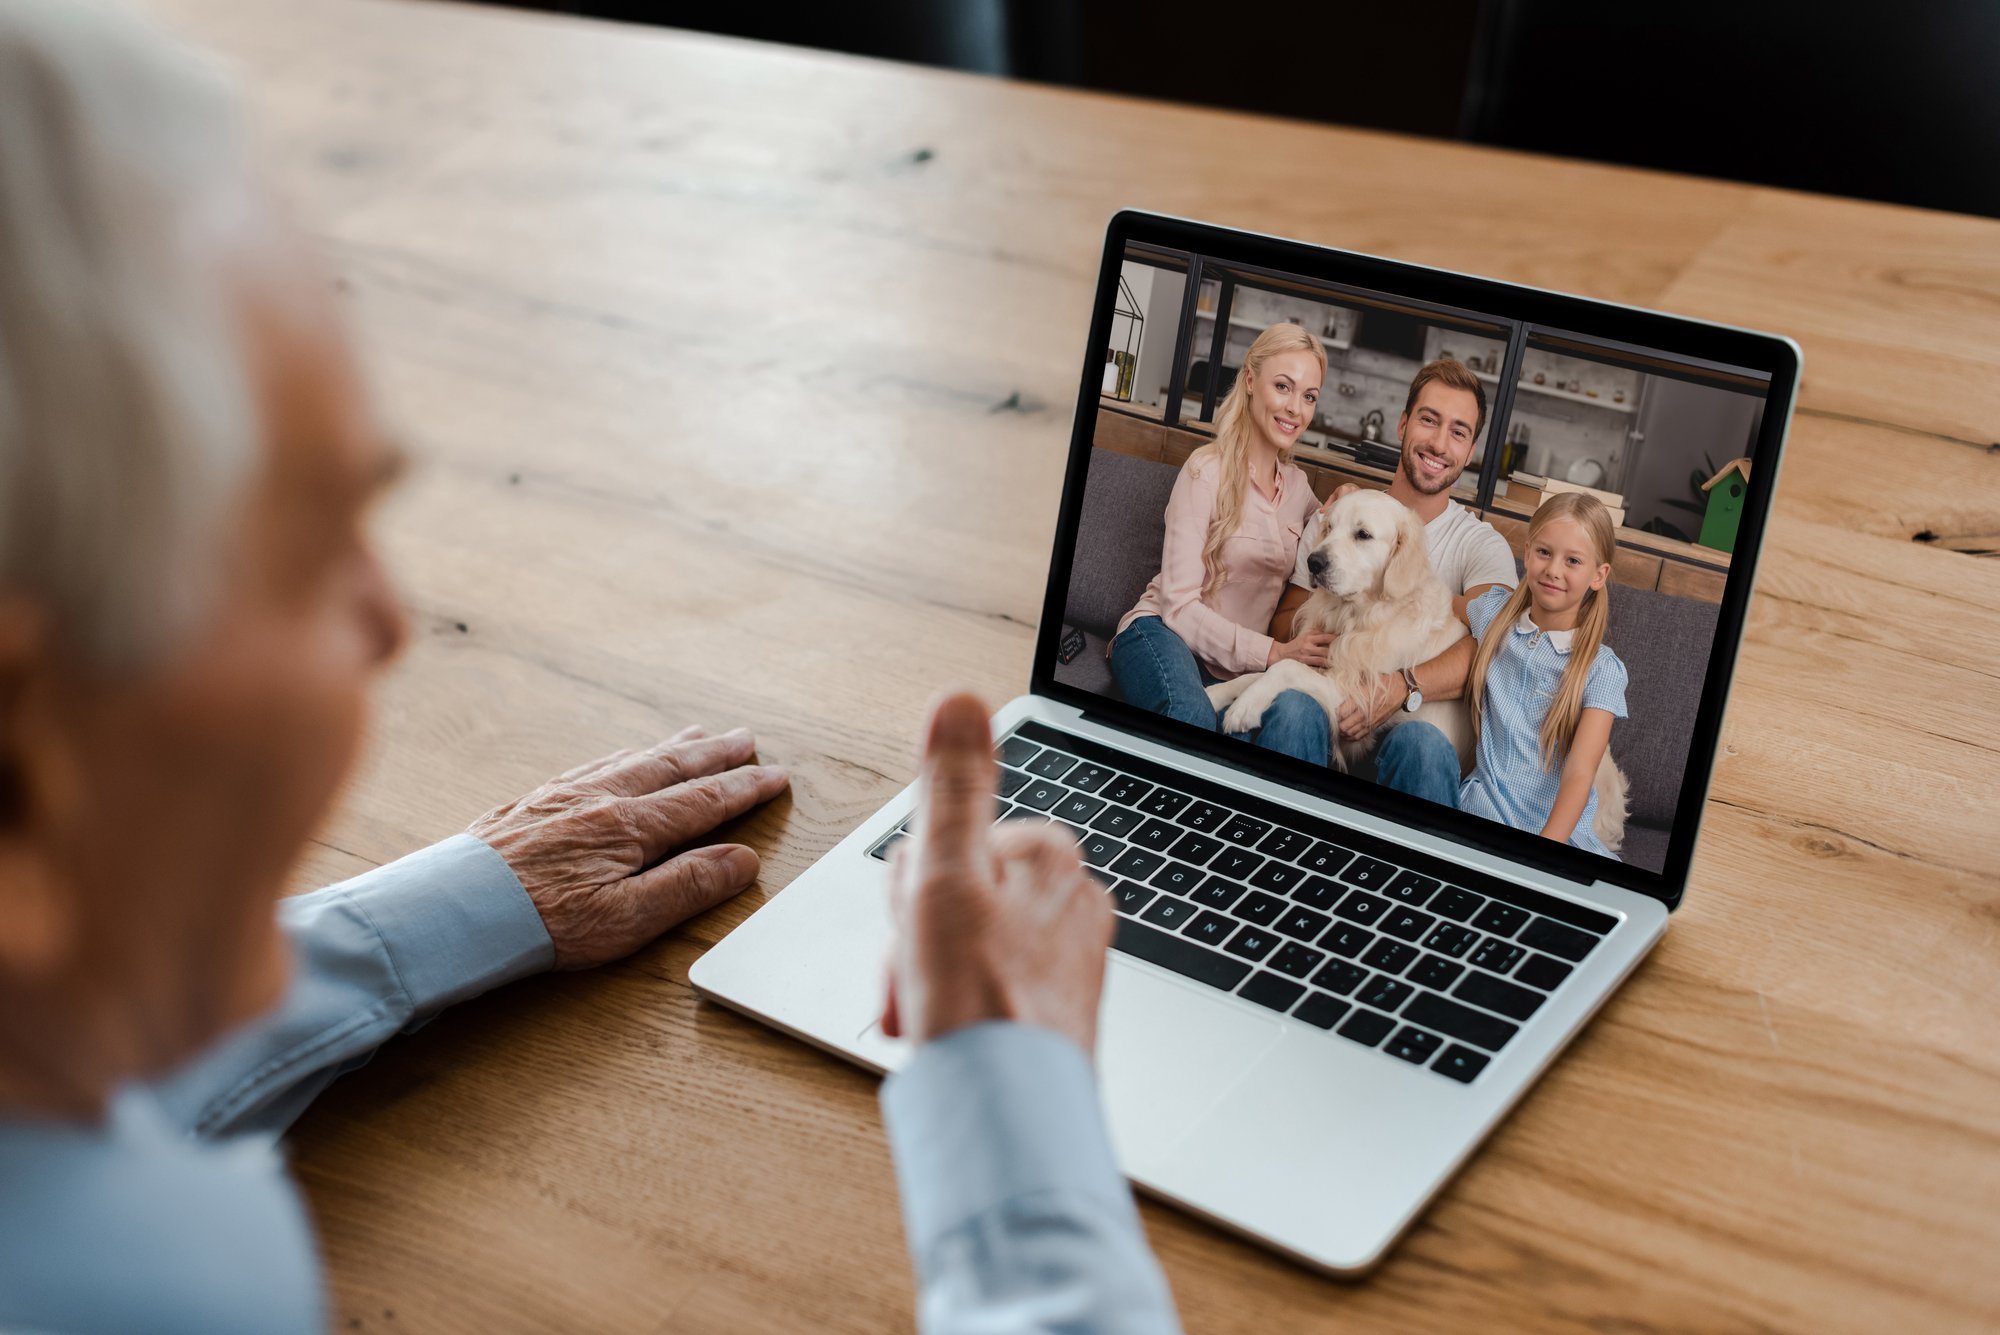 Video call between buyer and the breeder's family with the dog.